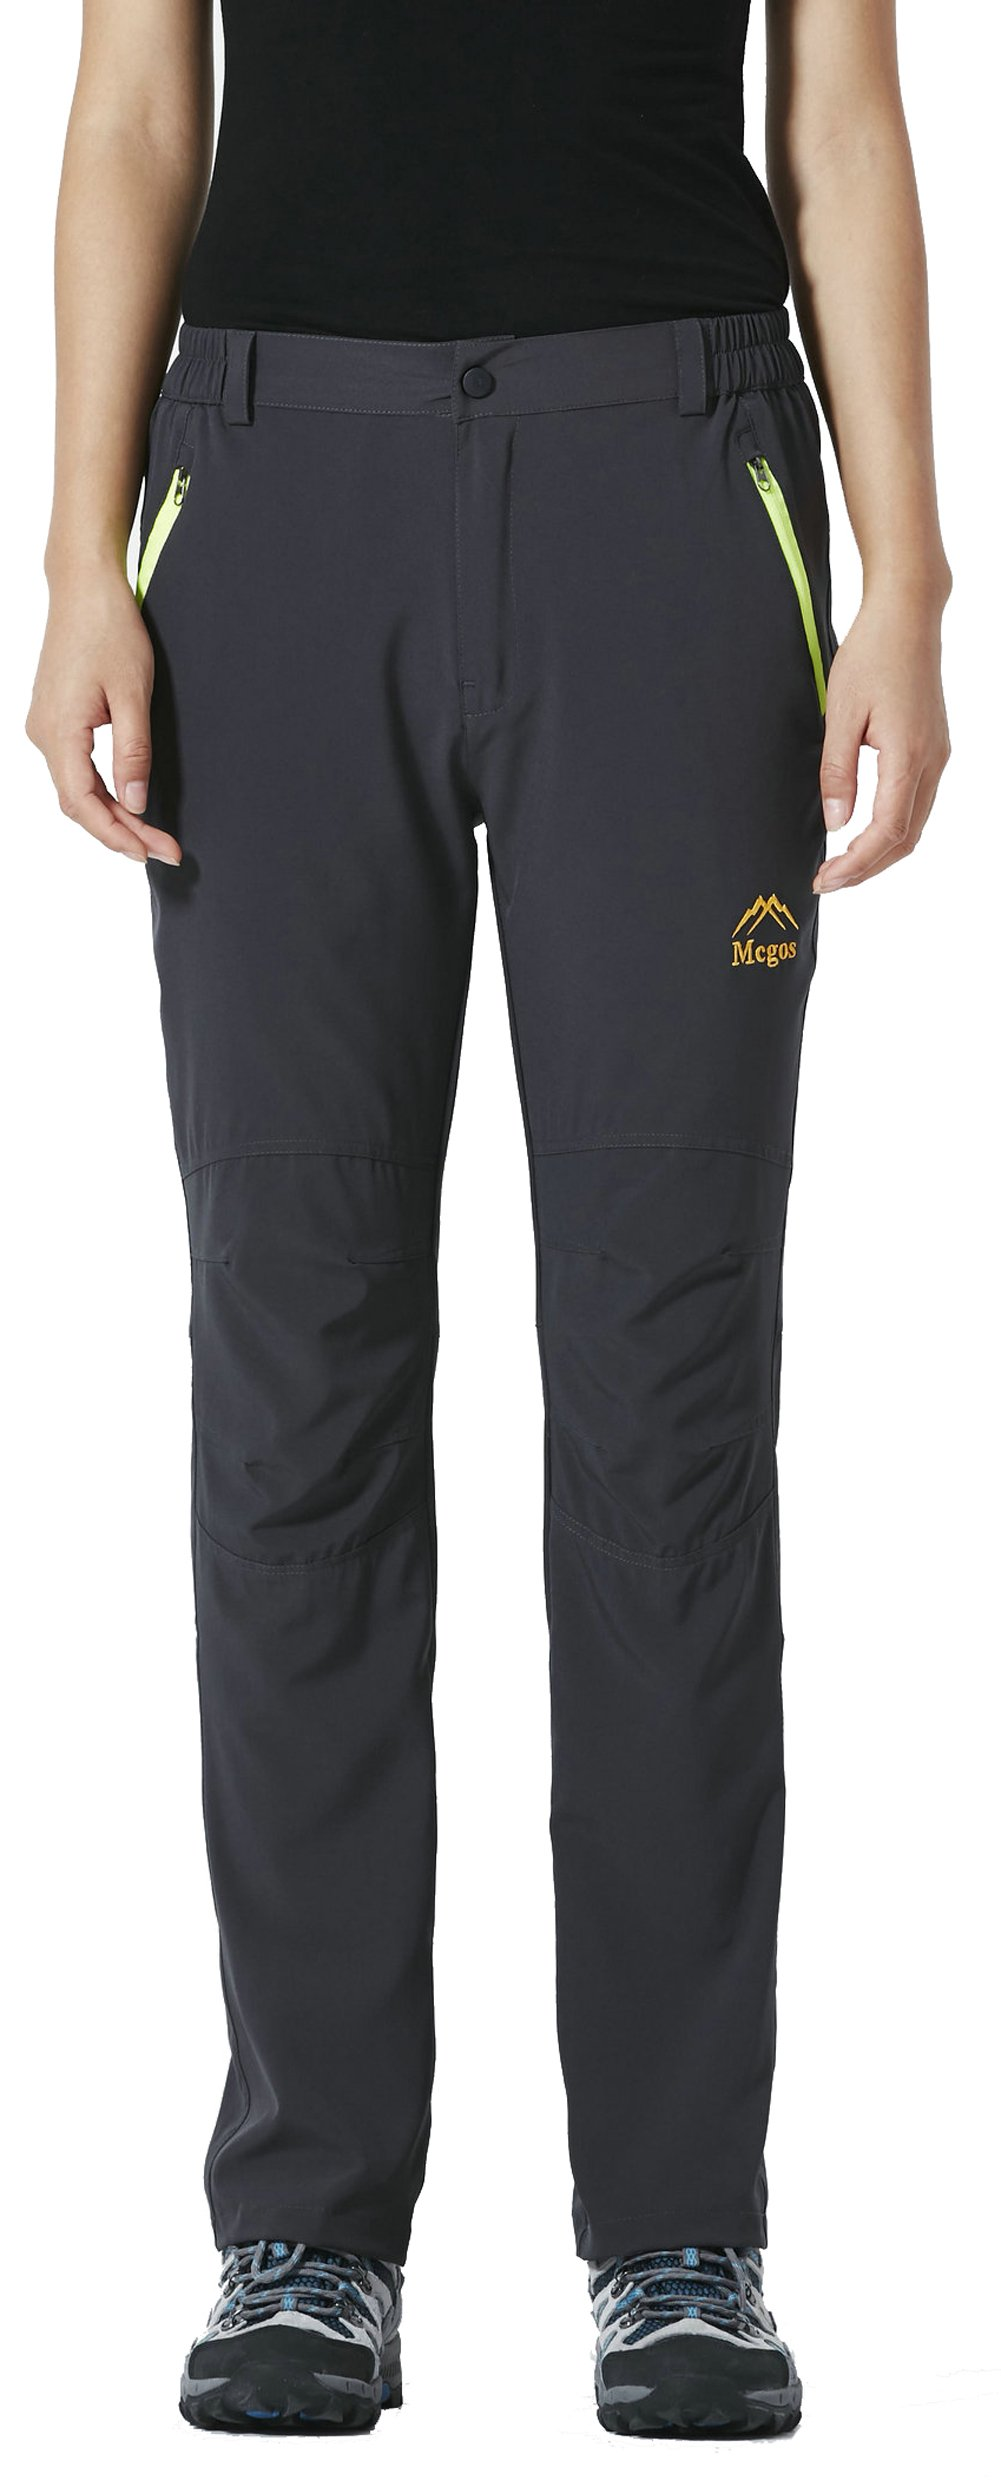 LancerPac Quick Dry Lightweight Women's Breathable Hiking Pants Outdoor Gray M